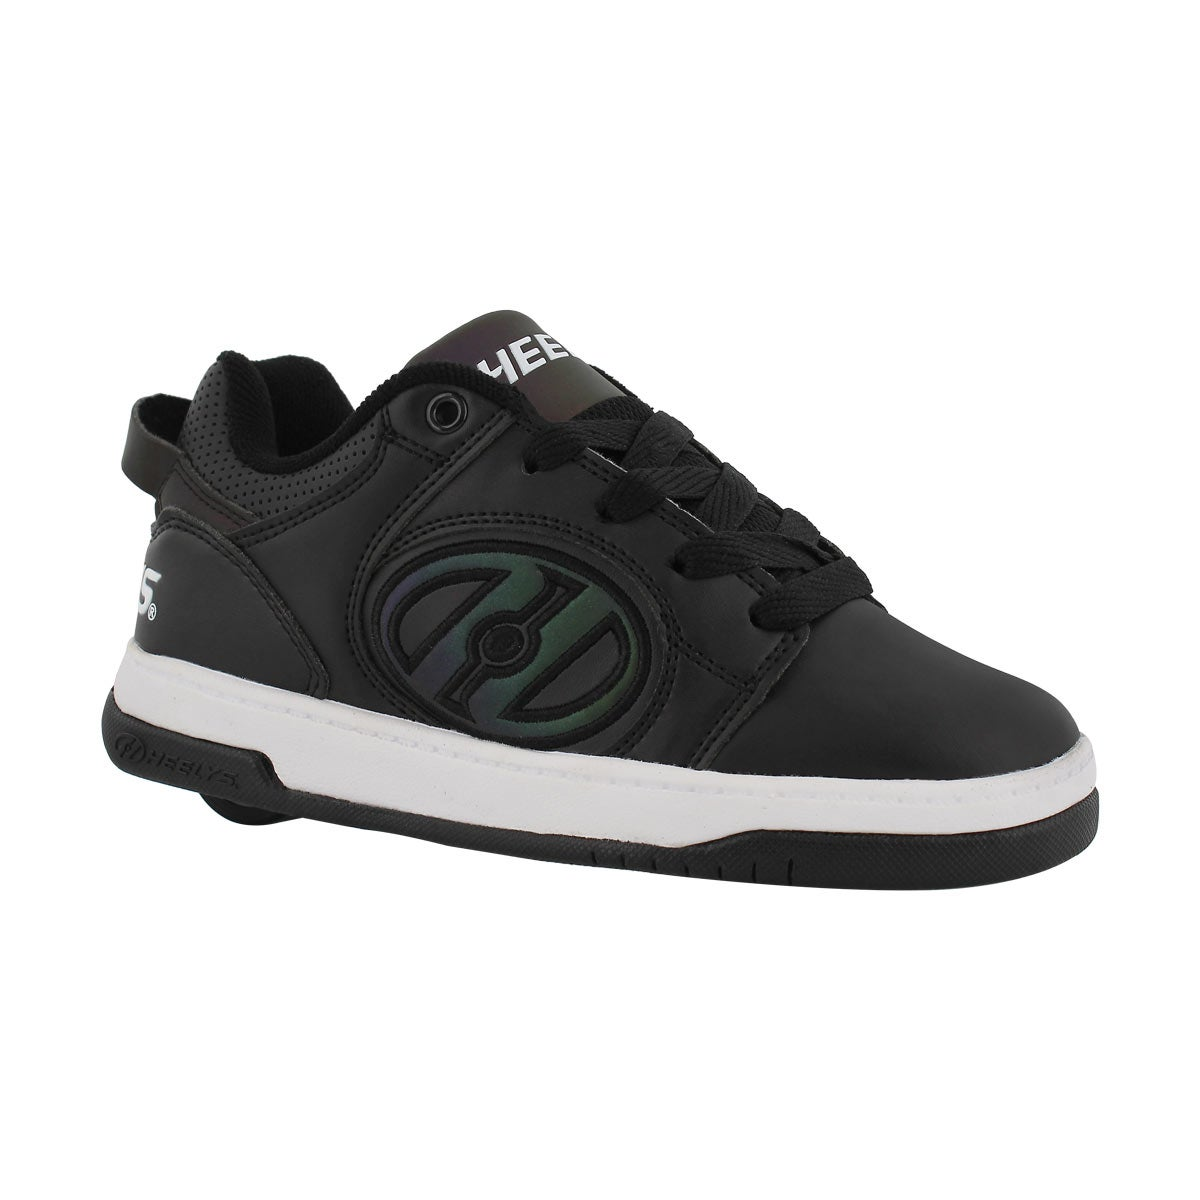 Boys' VOYAGER black reflective skate sneakers